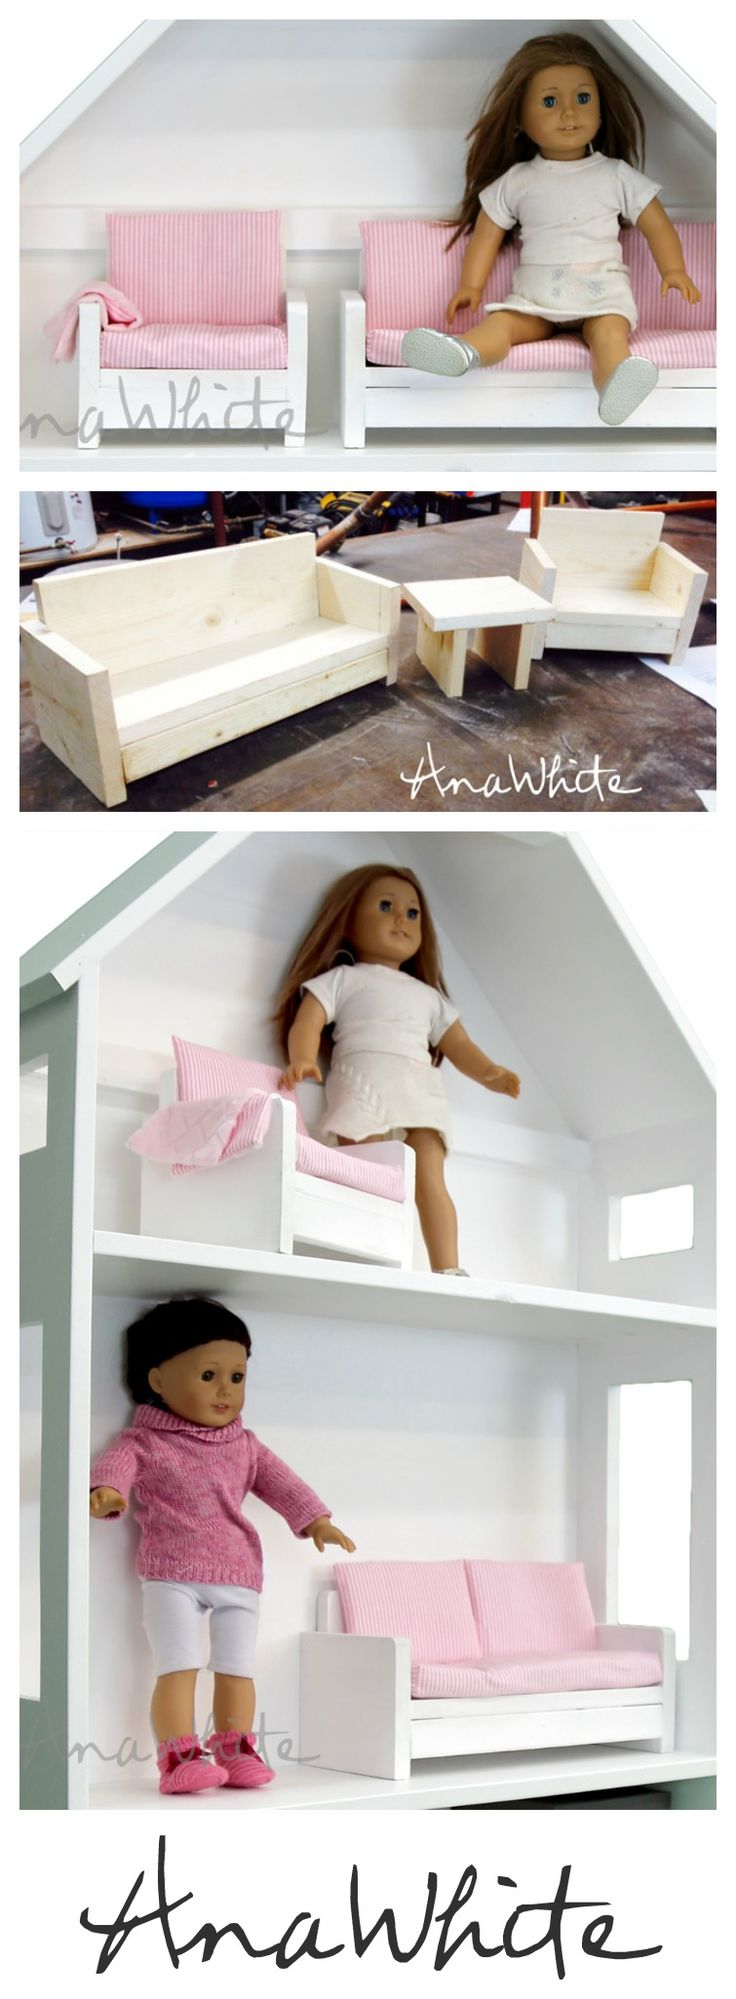 "diy doll furniture you can make from scrap wood - Easy to make American Girl or 18"" Doll Sofa and Chair!  Just 1x6 and 1x2 scrap wood.  Easy plans by Ana White 